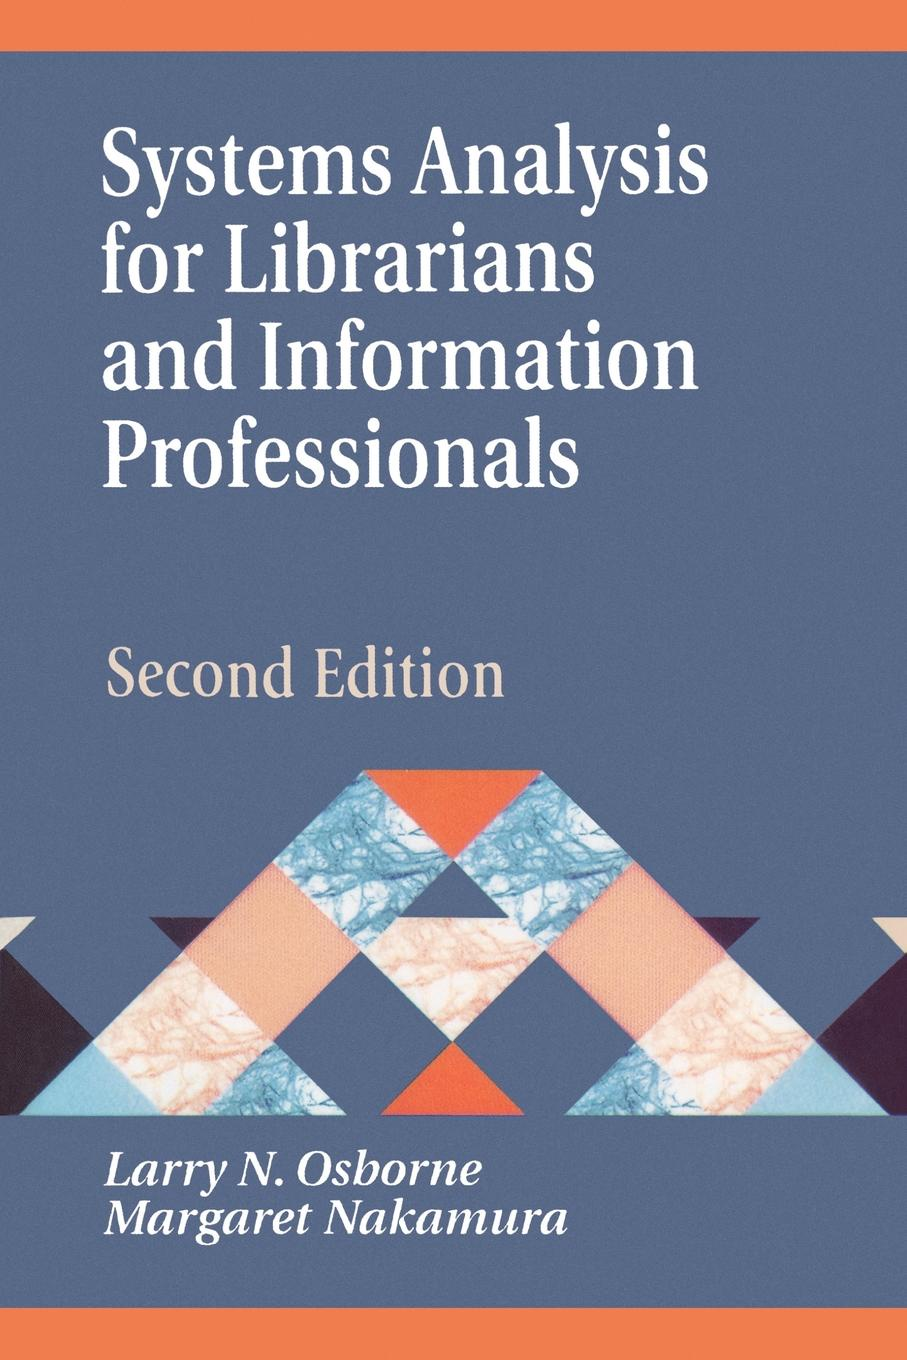 лучшая цена Larry N. Osborne, Margaret Nakamura Systems Analysis for Librarians and Information Professionals. Second Edition